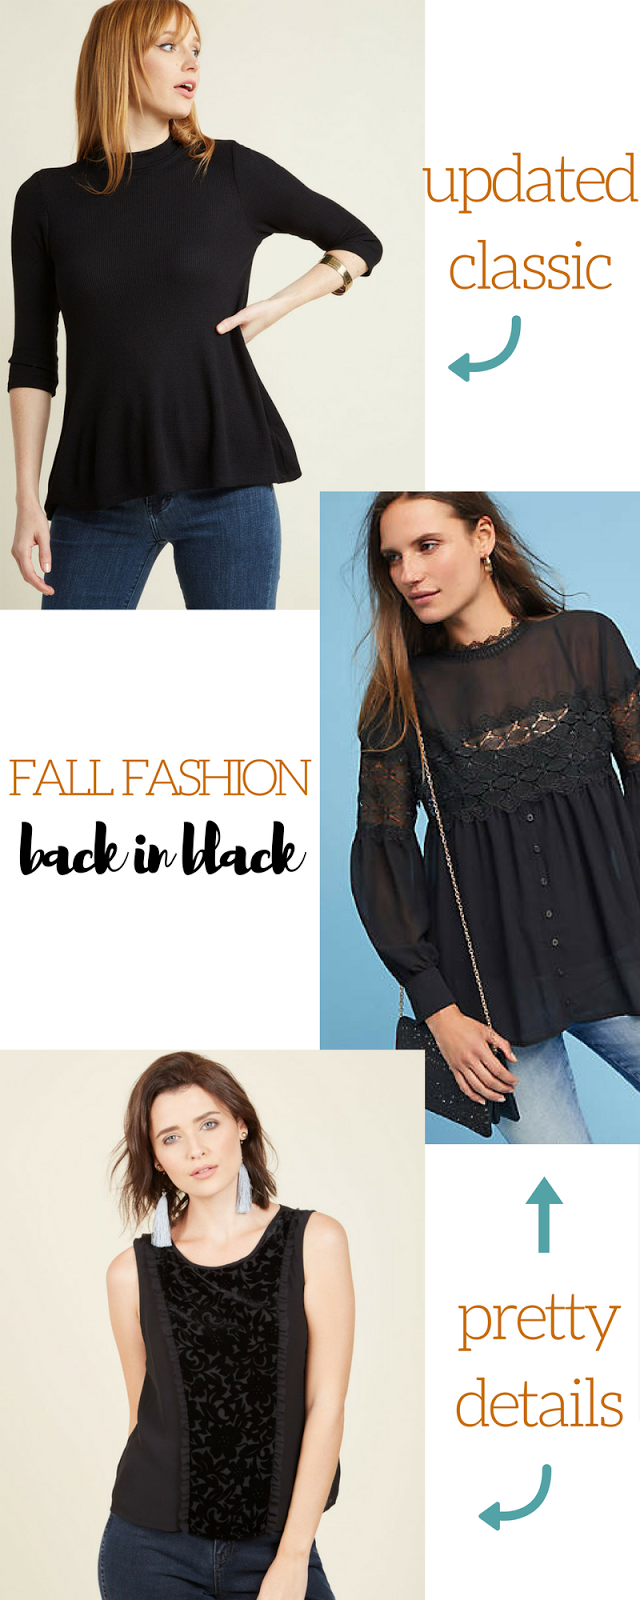 Fall and Winter Fashion: Back In Black